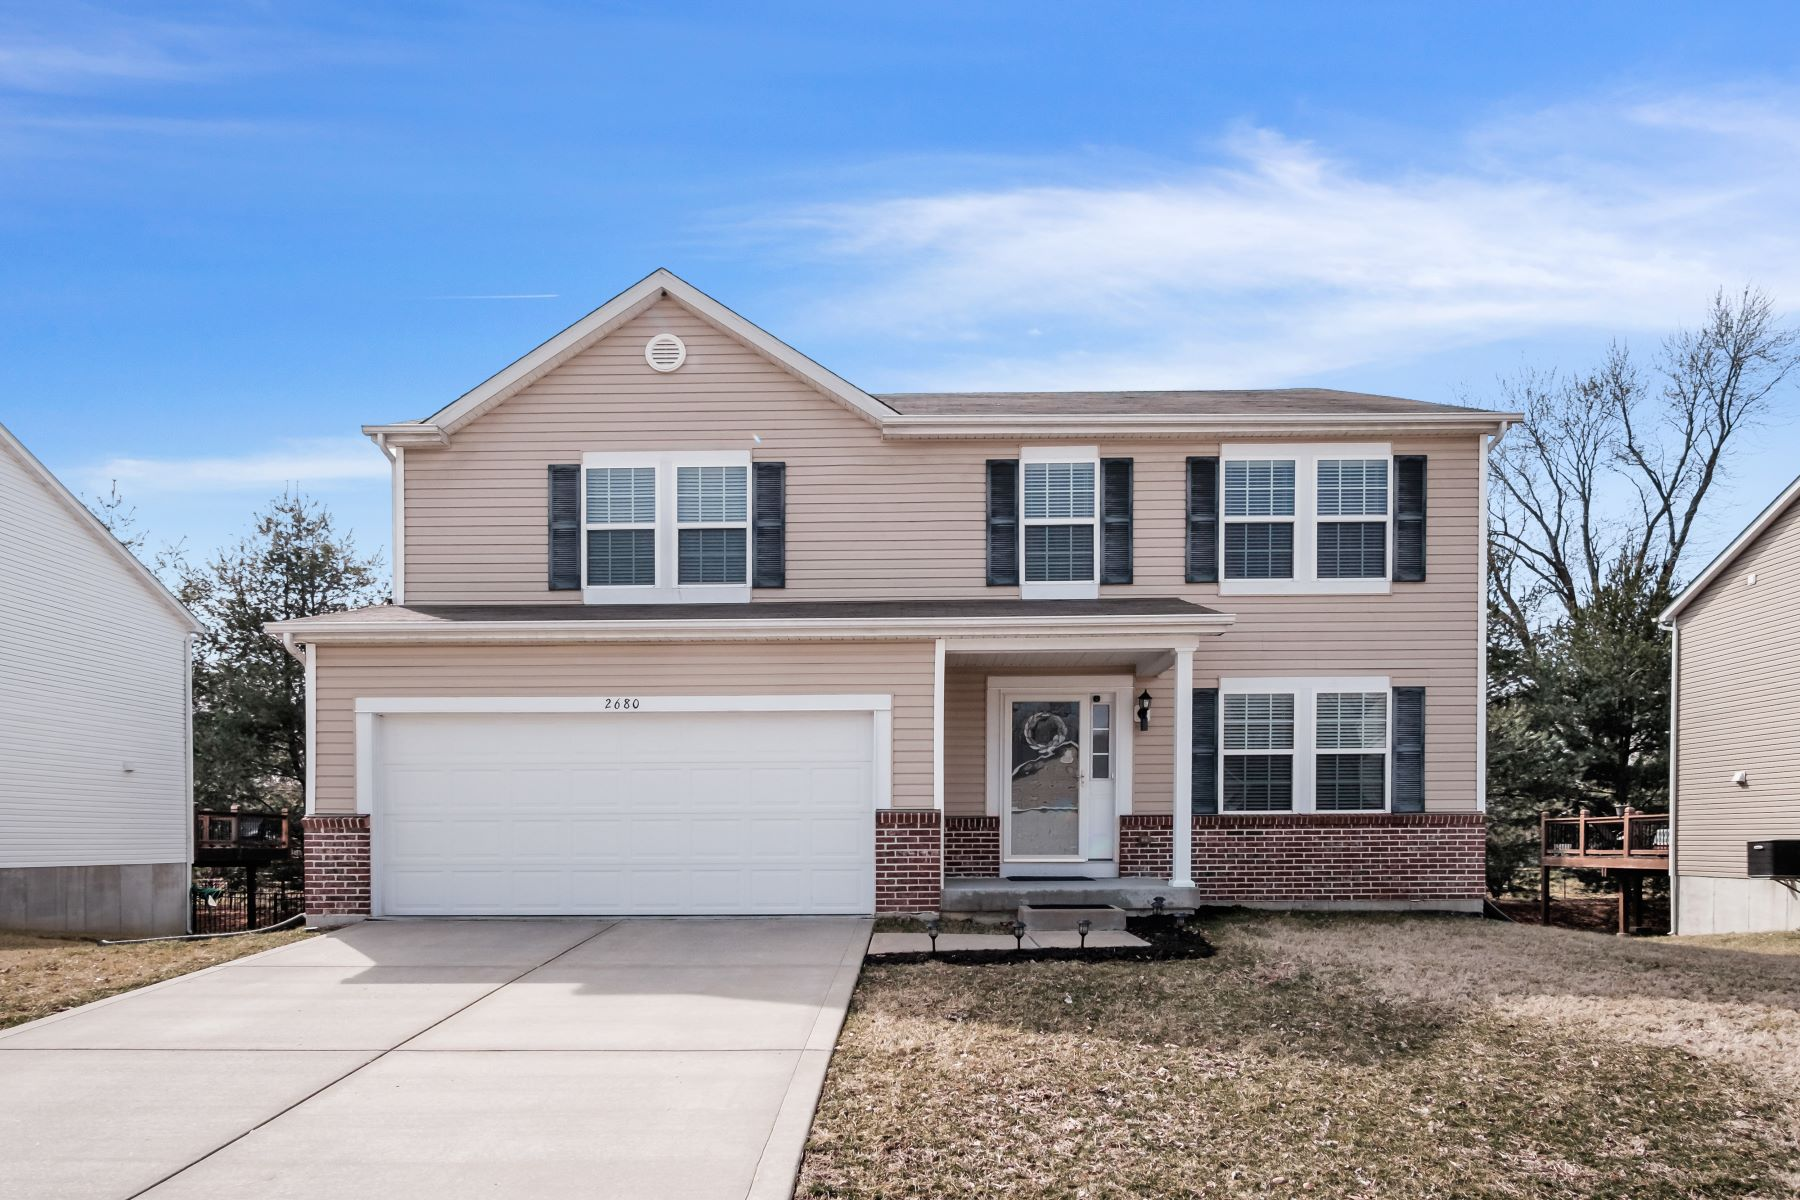 Single Family Homes for Sale at An Oasis In Newer Hazelwood Schools Subdivision 2680 Valley Brook Drive, Florissant, Missouri 63031 United States